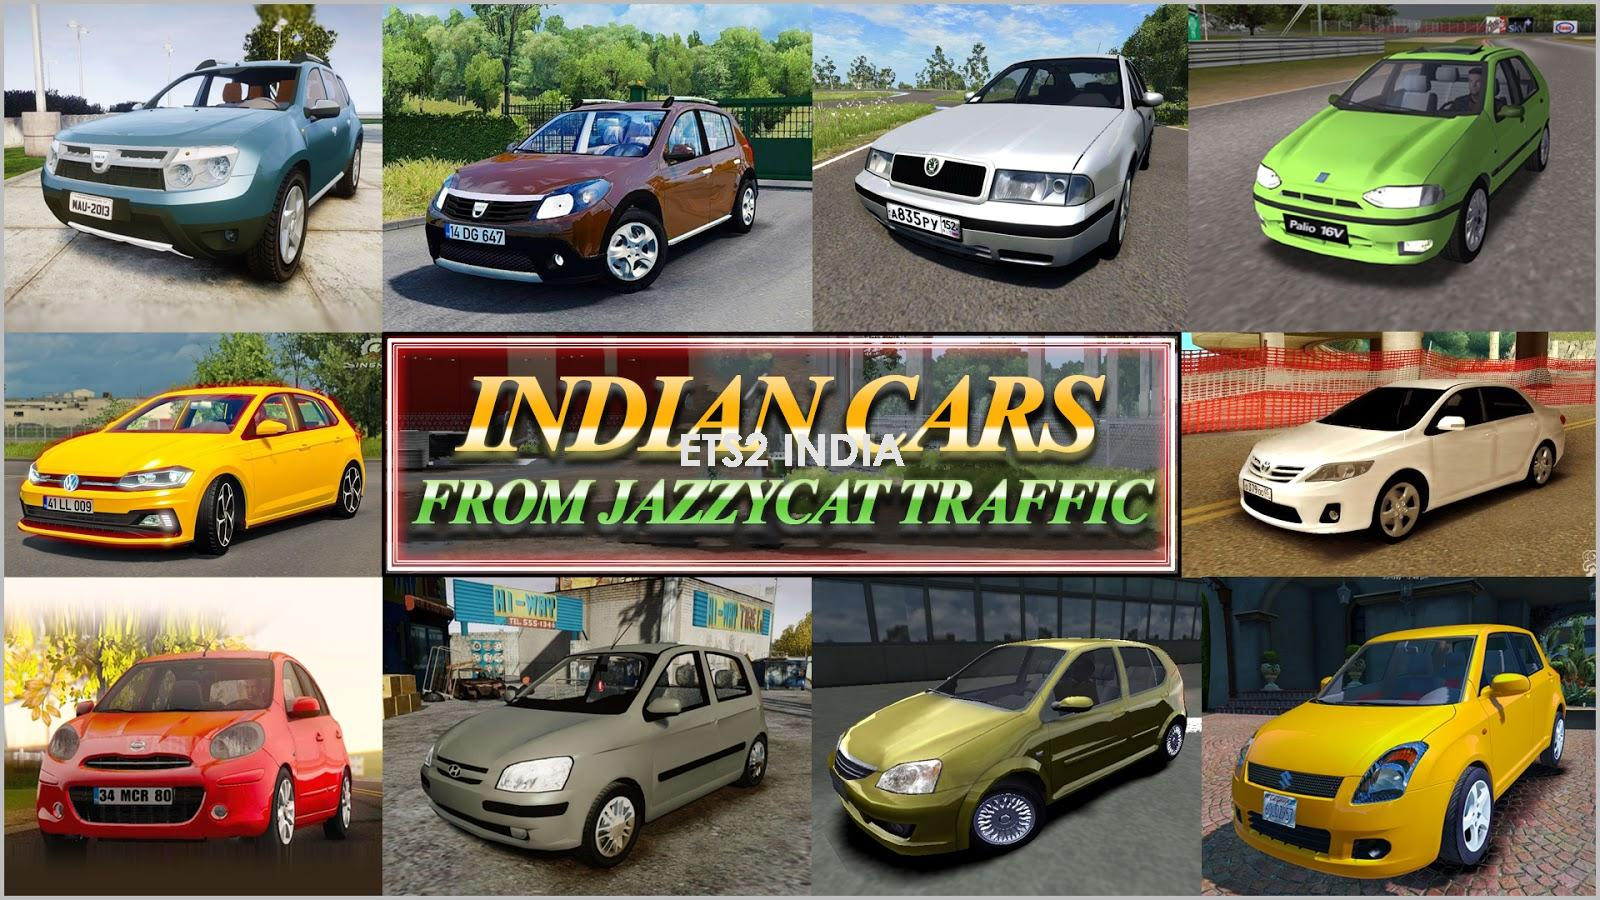 Indian Cars Traffic Pack Jazzycat [1.30-1.31]